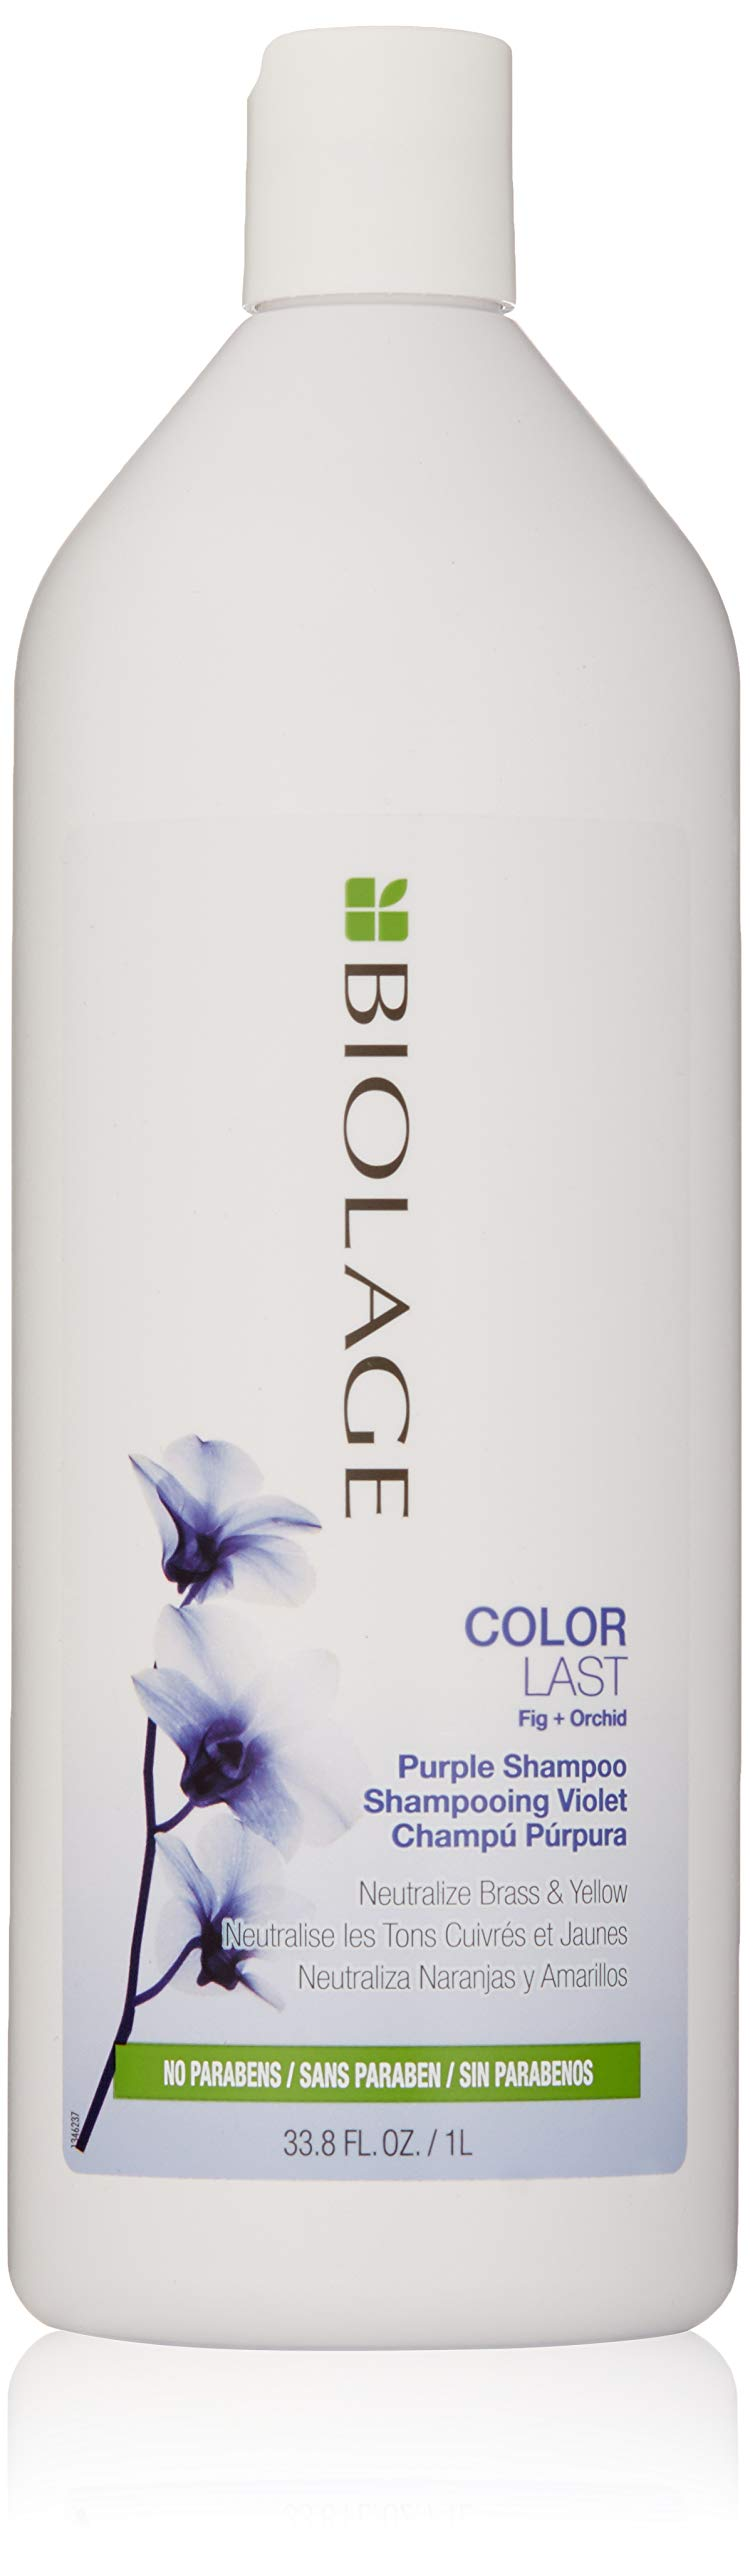 Biolage ColorLast Purple Shampoo with Fig and Orchid for Neutralizing Brass & Yellow, 33.8 fl. oz. by BIOLAGE